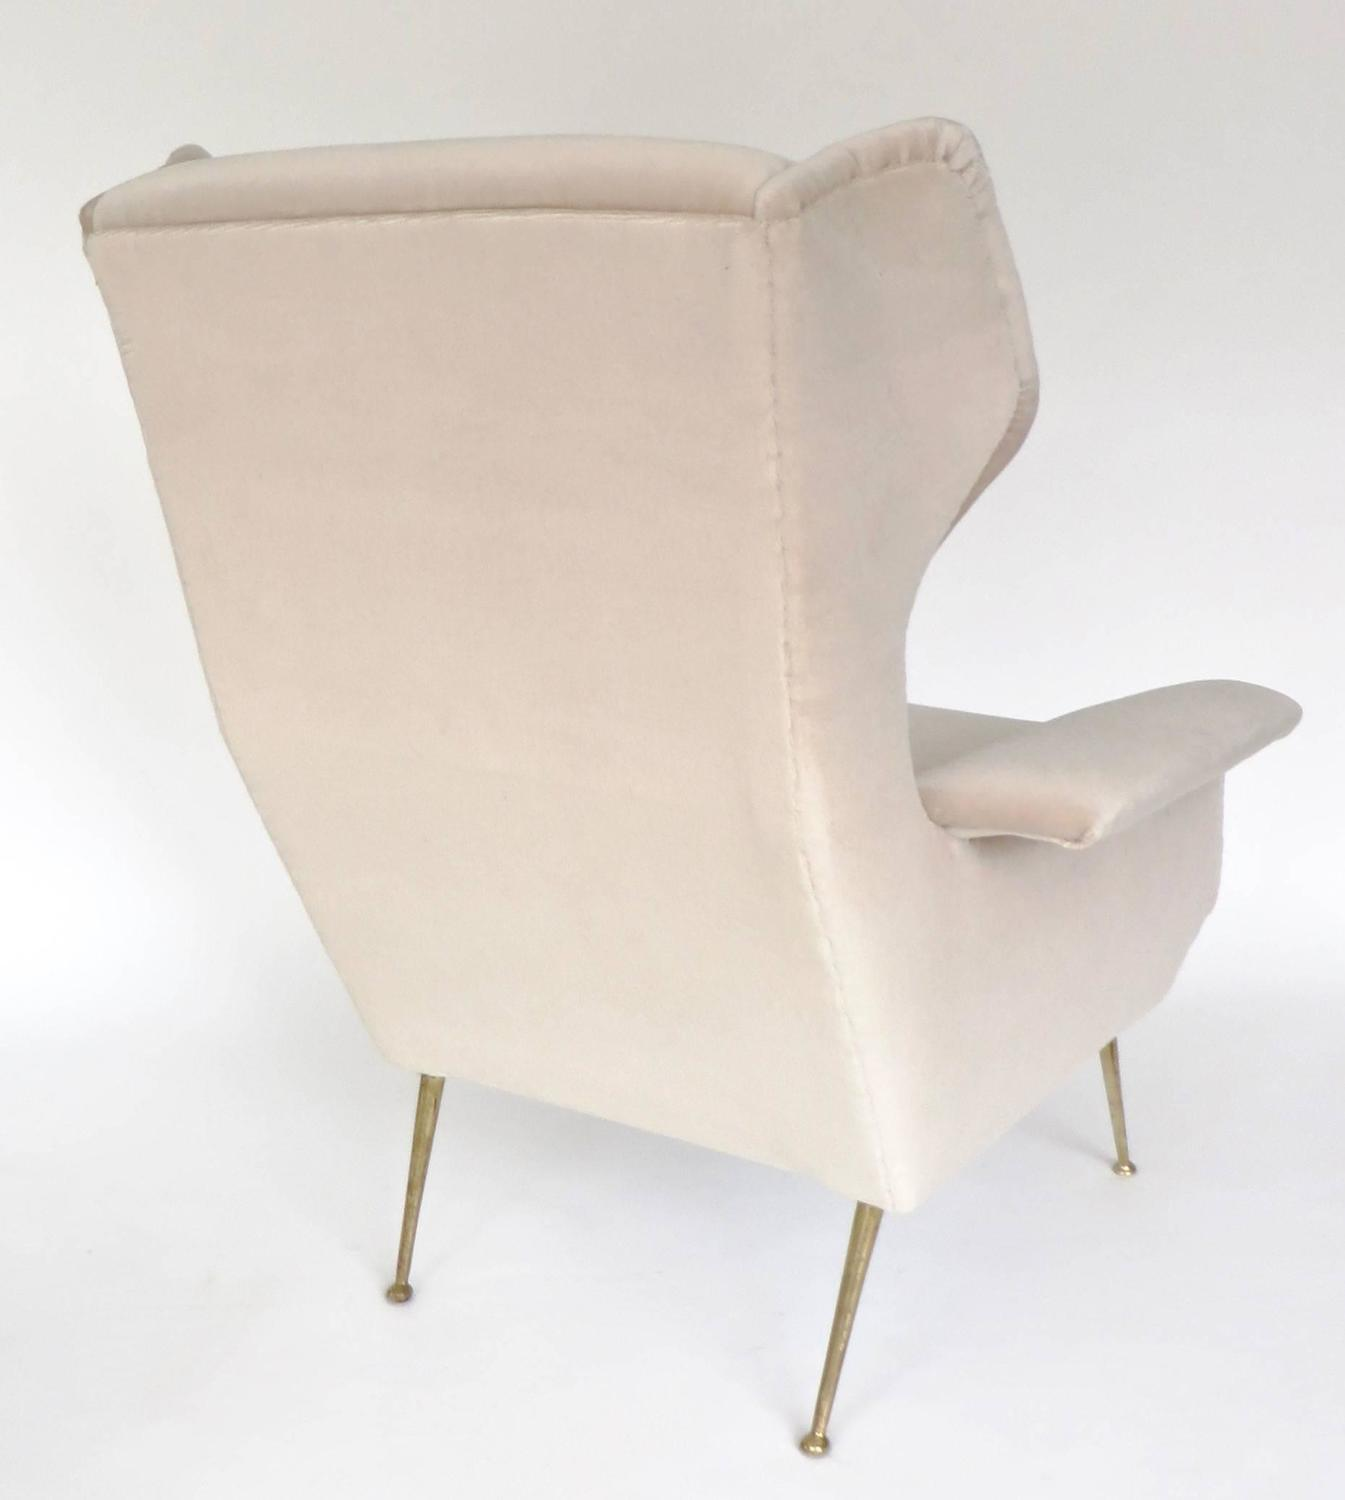 Italian Upholstered Wingback Lounge Chair With Brass Legs And Feet For Sale At 1stdibs